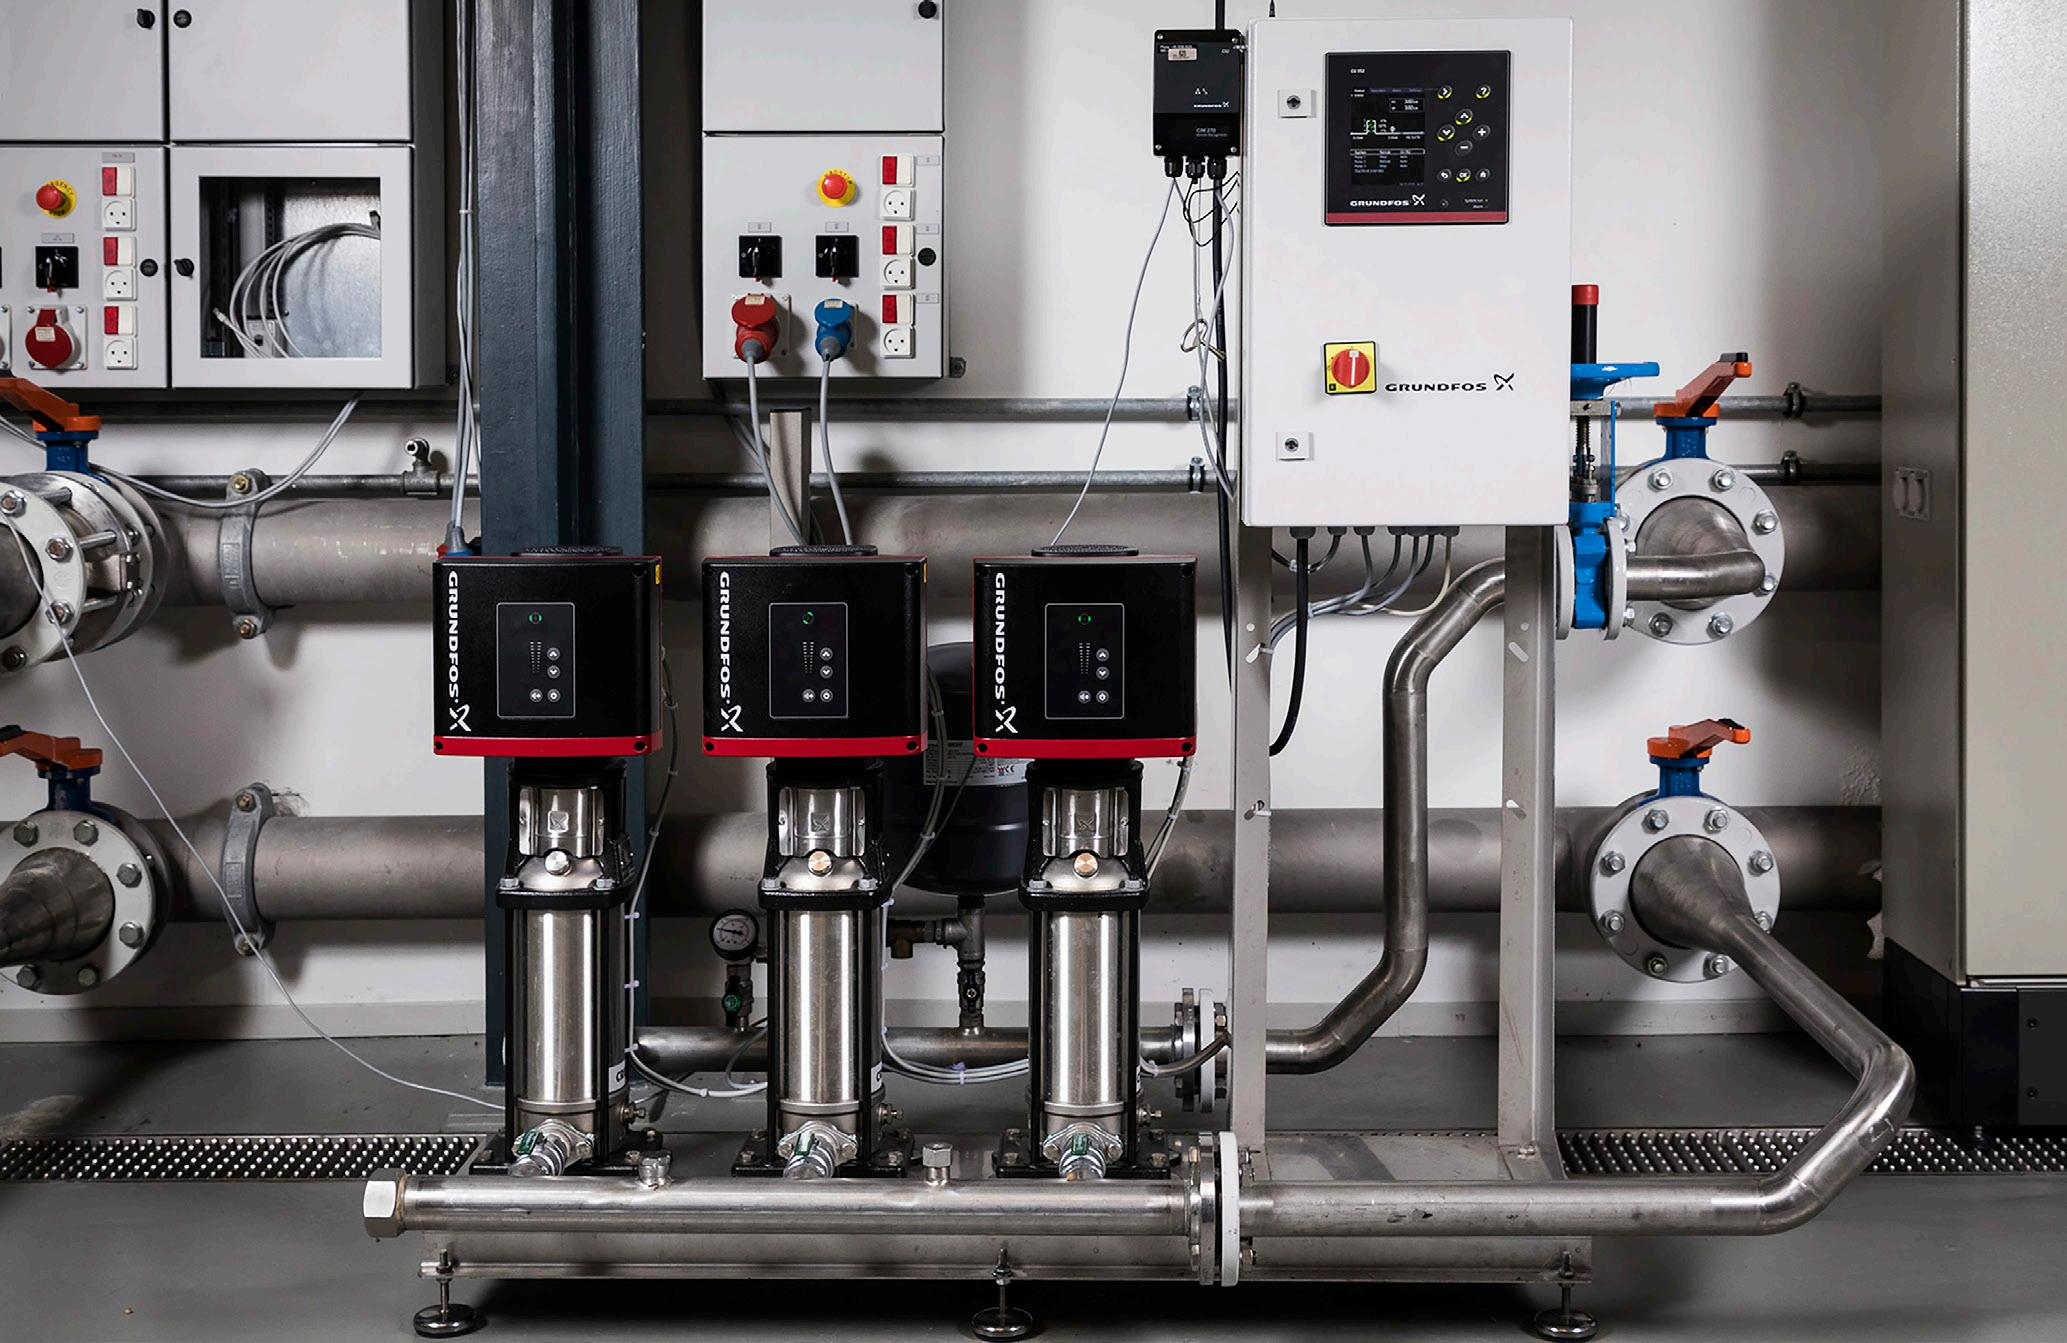 Page 19 of Intelligent water boosting systems for energy savings